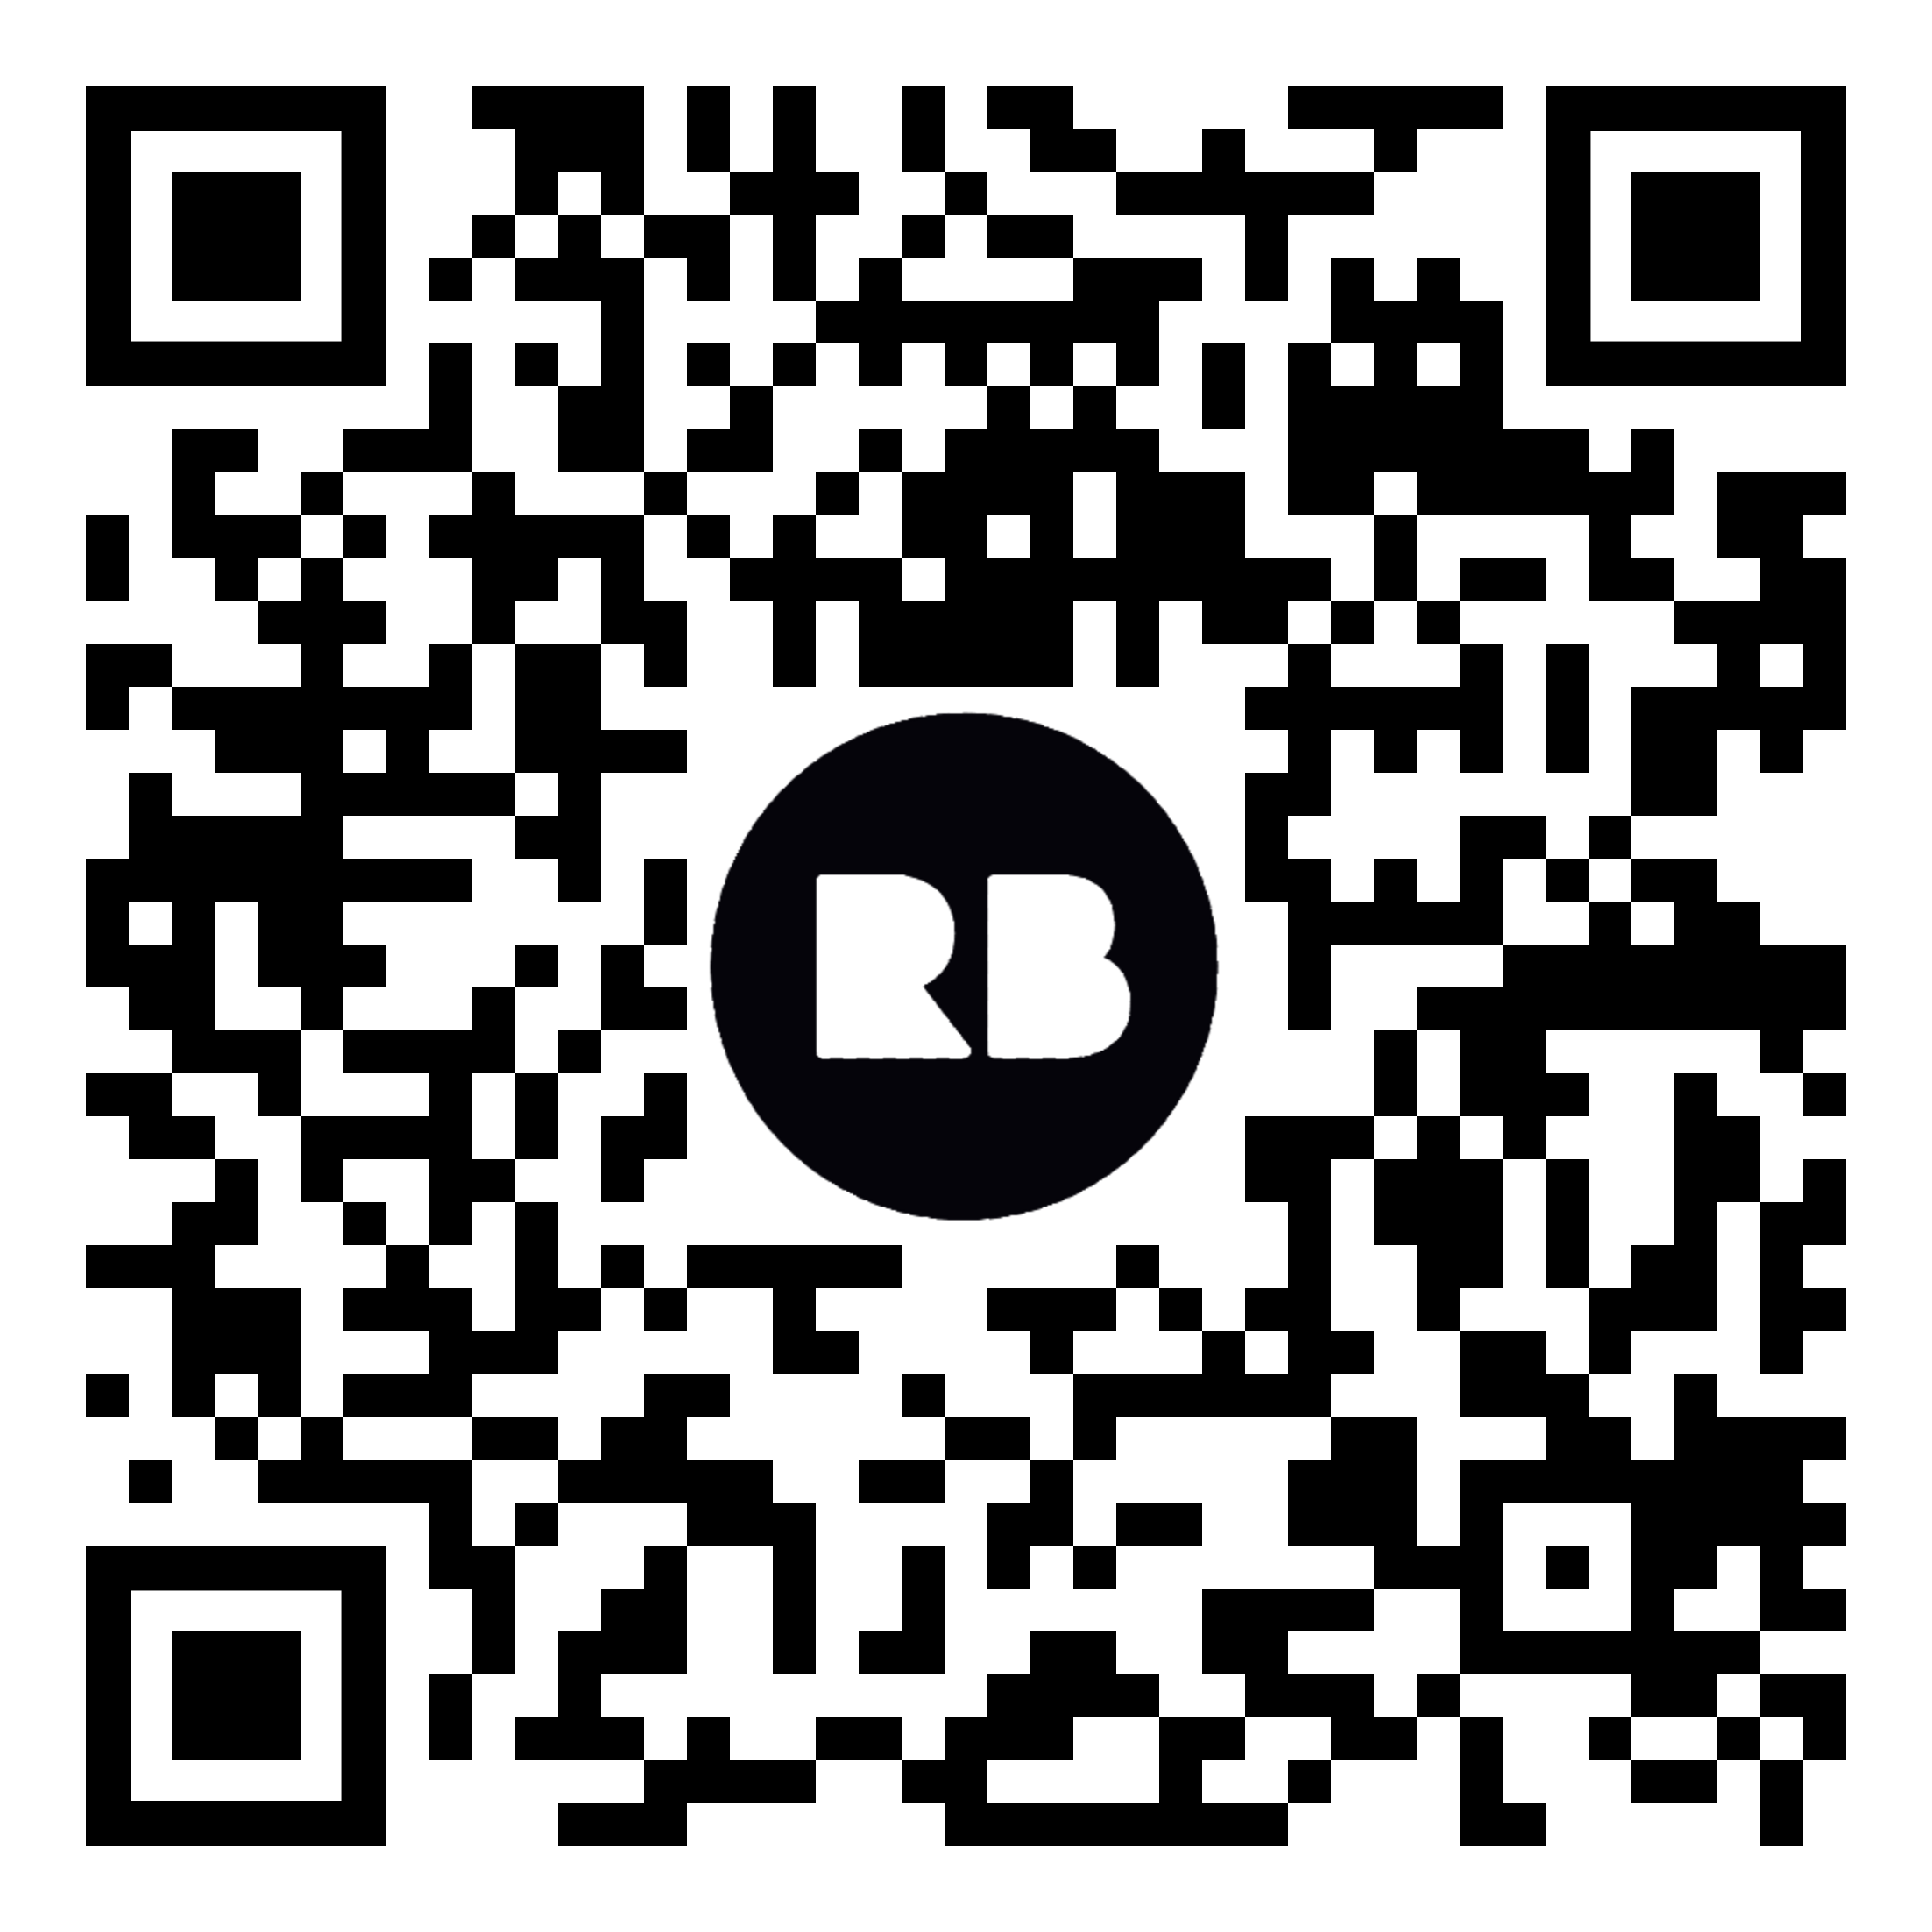 QR-Code Redbubble Shop Kreativ Studio Nuding